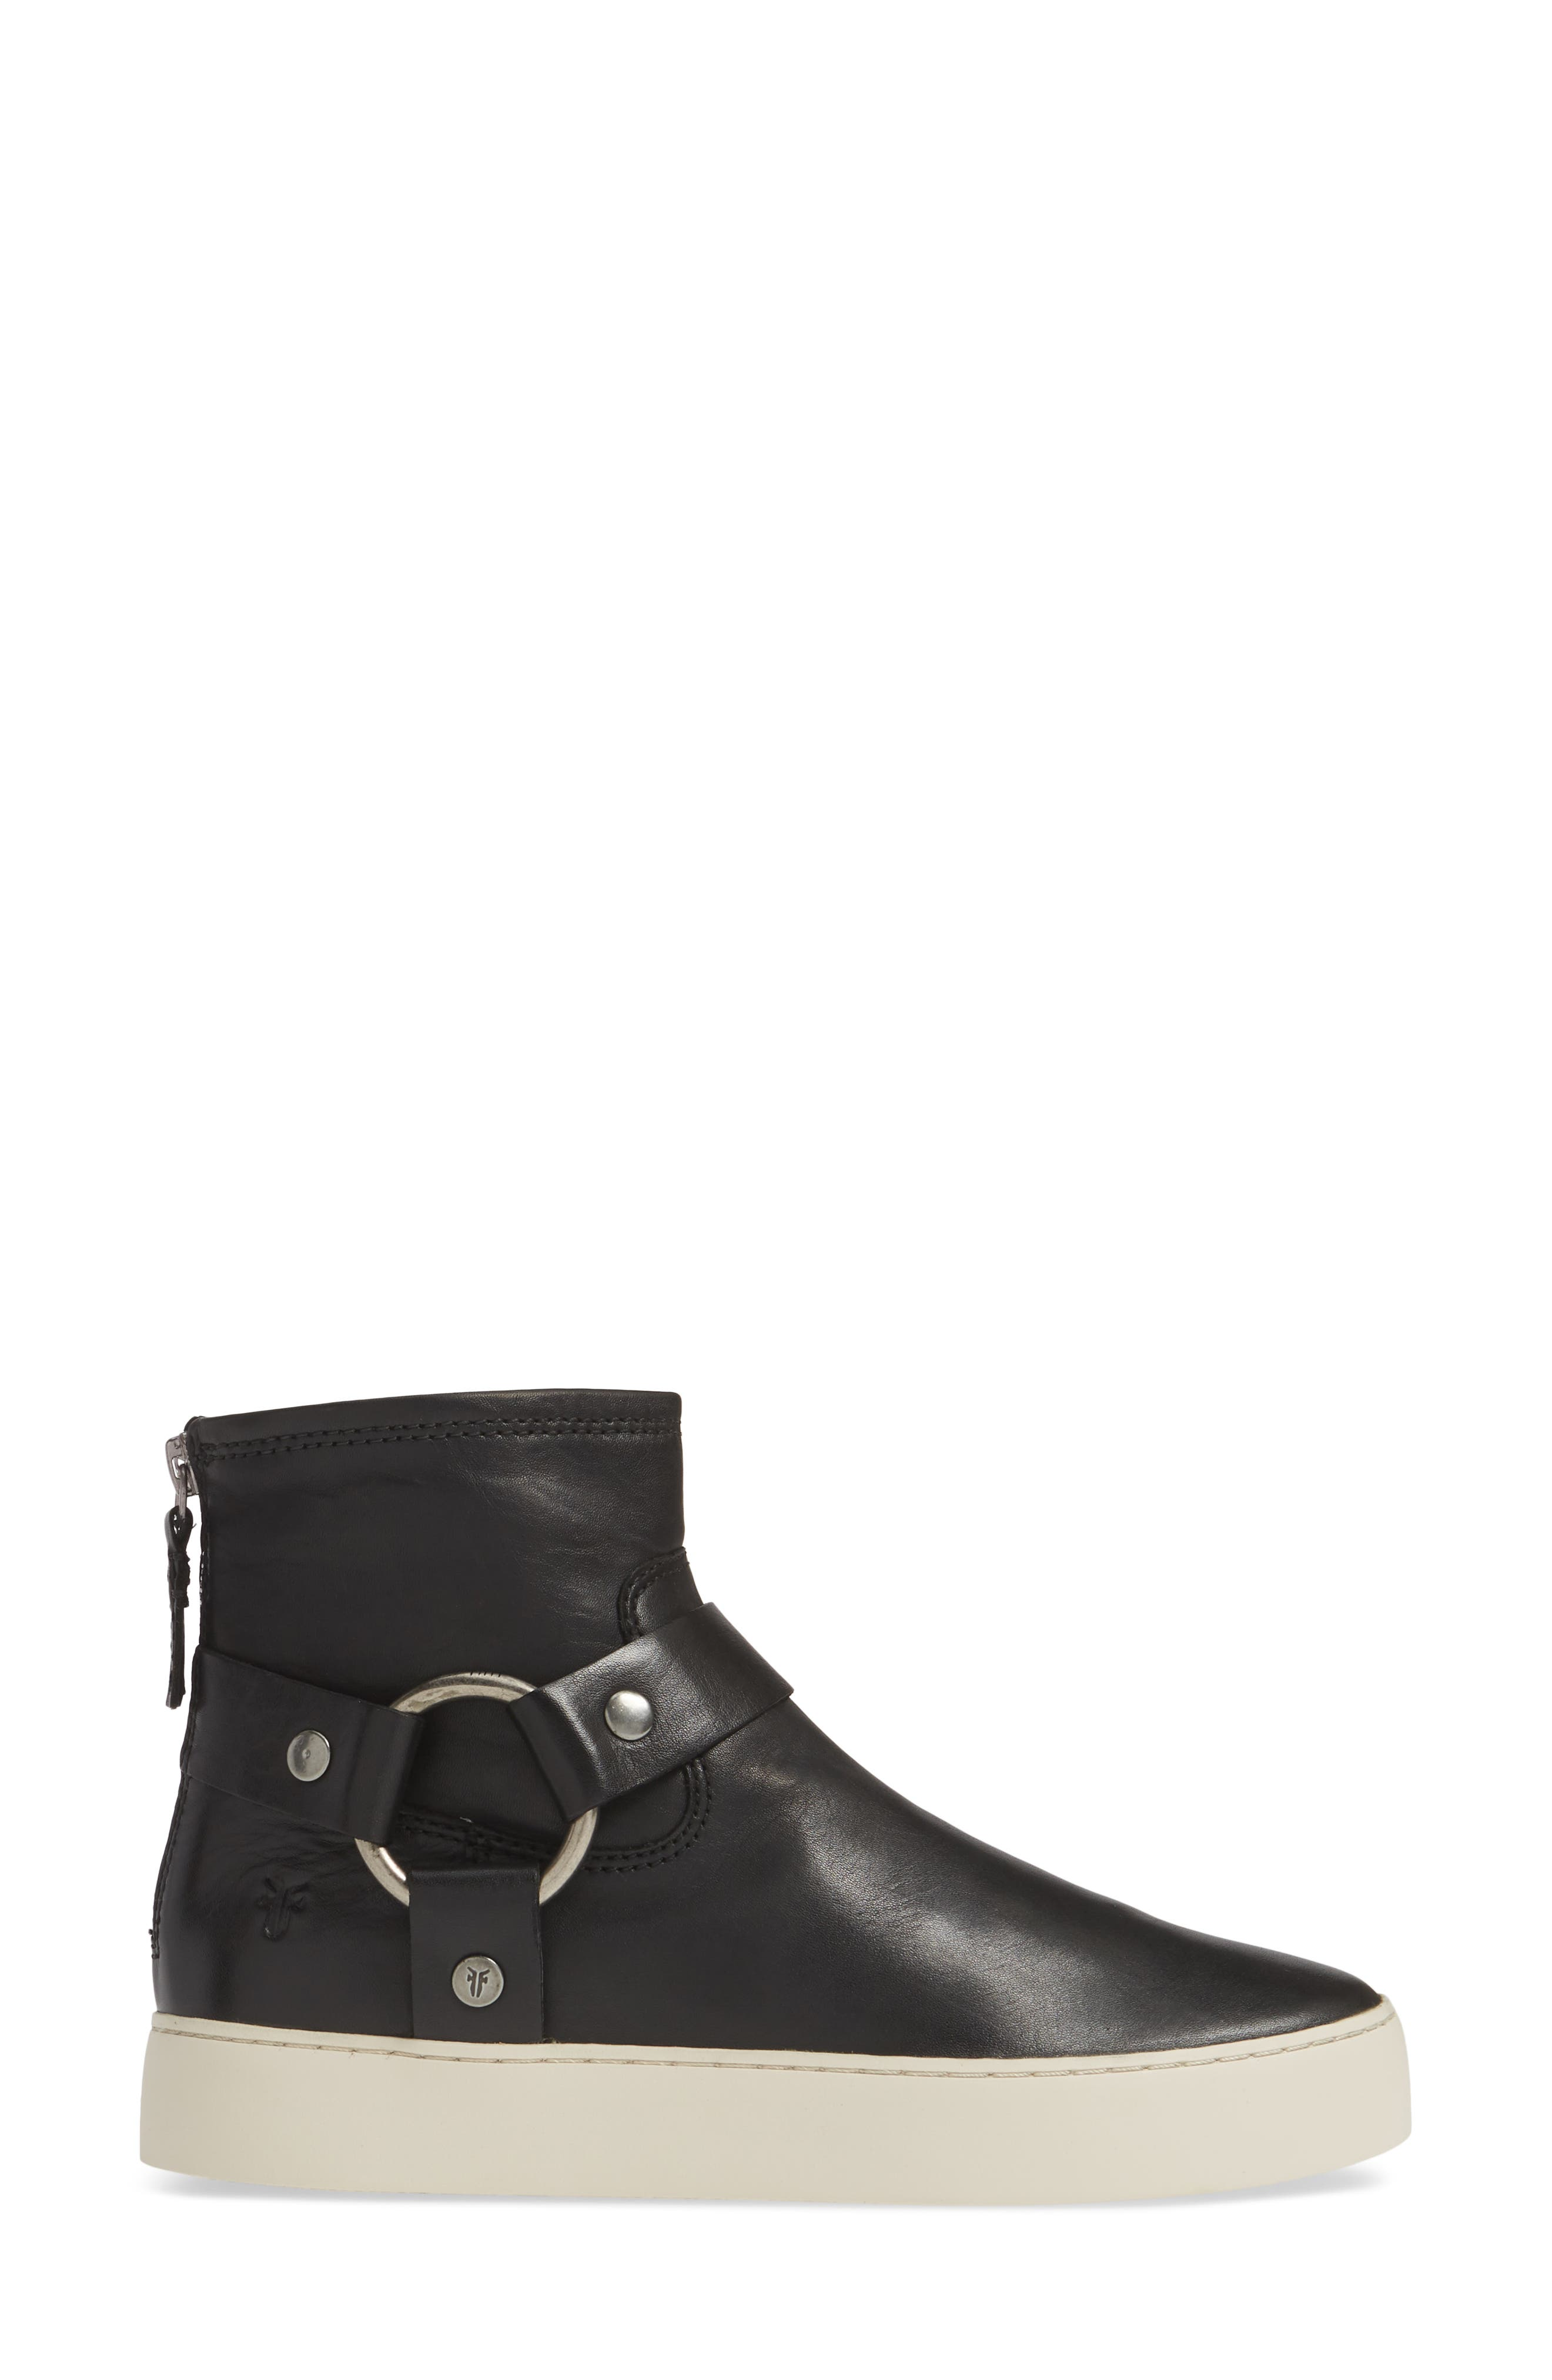 FRYE,                             Lena Harness Bootie,                             Alternate thumbnail 3, color,                             BLACK LEATHER